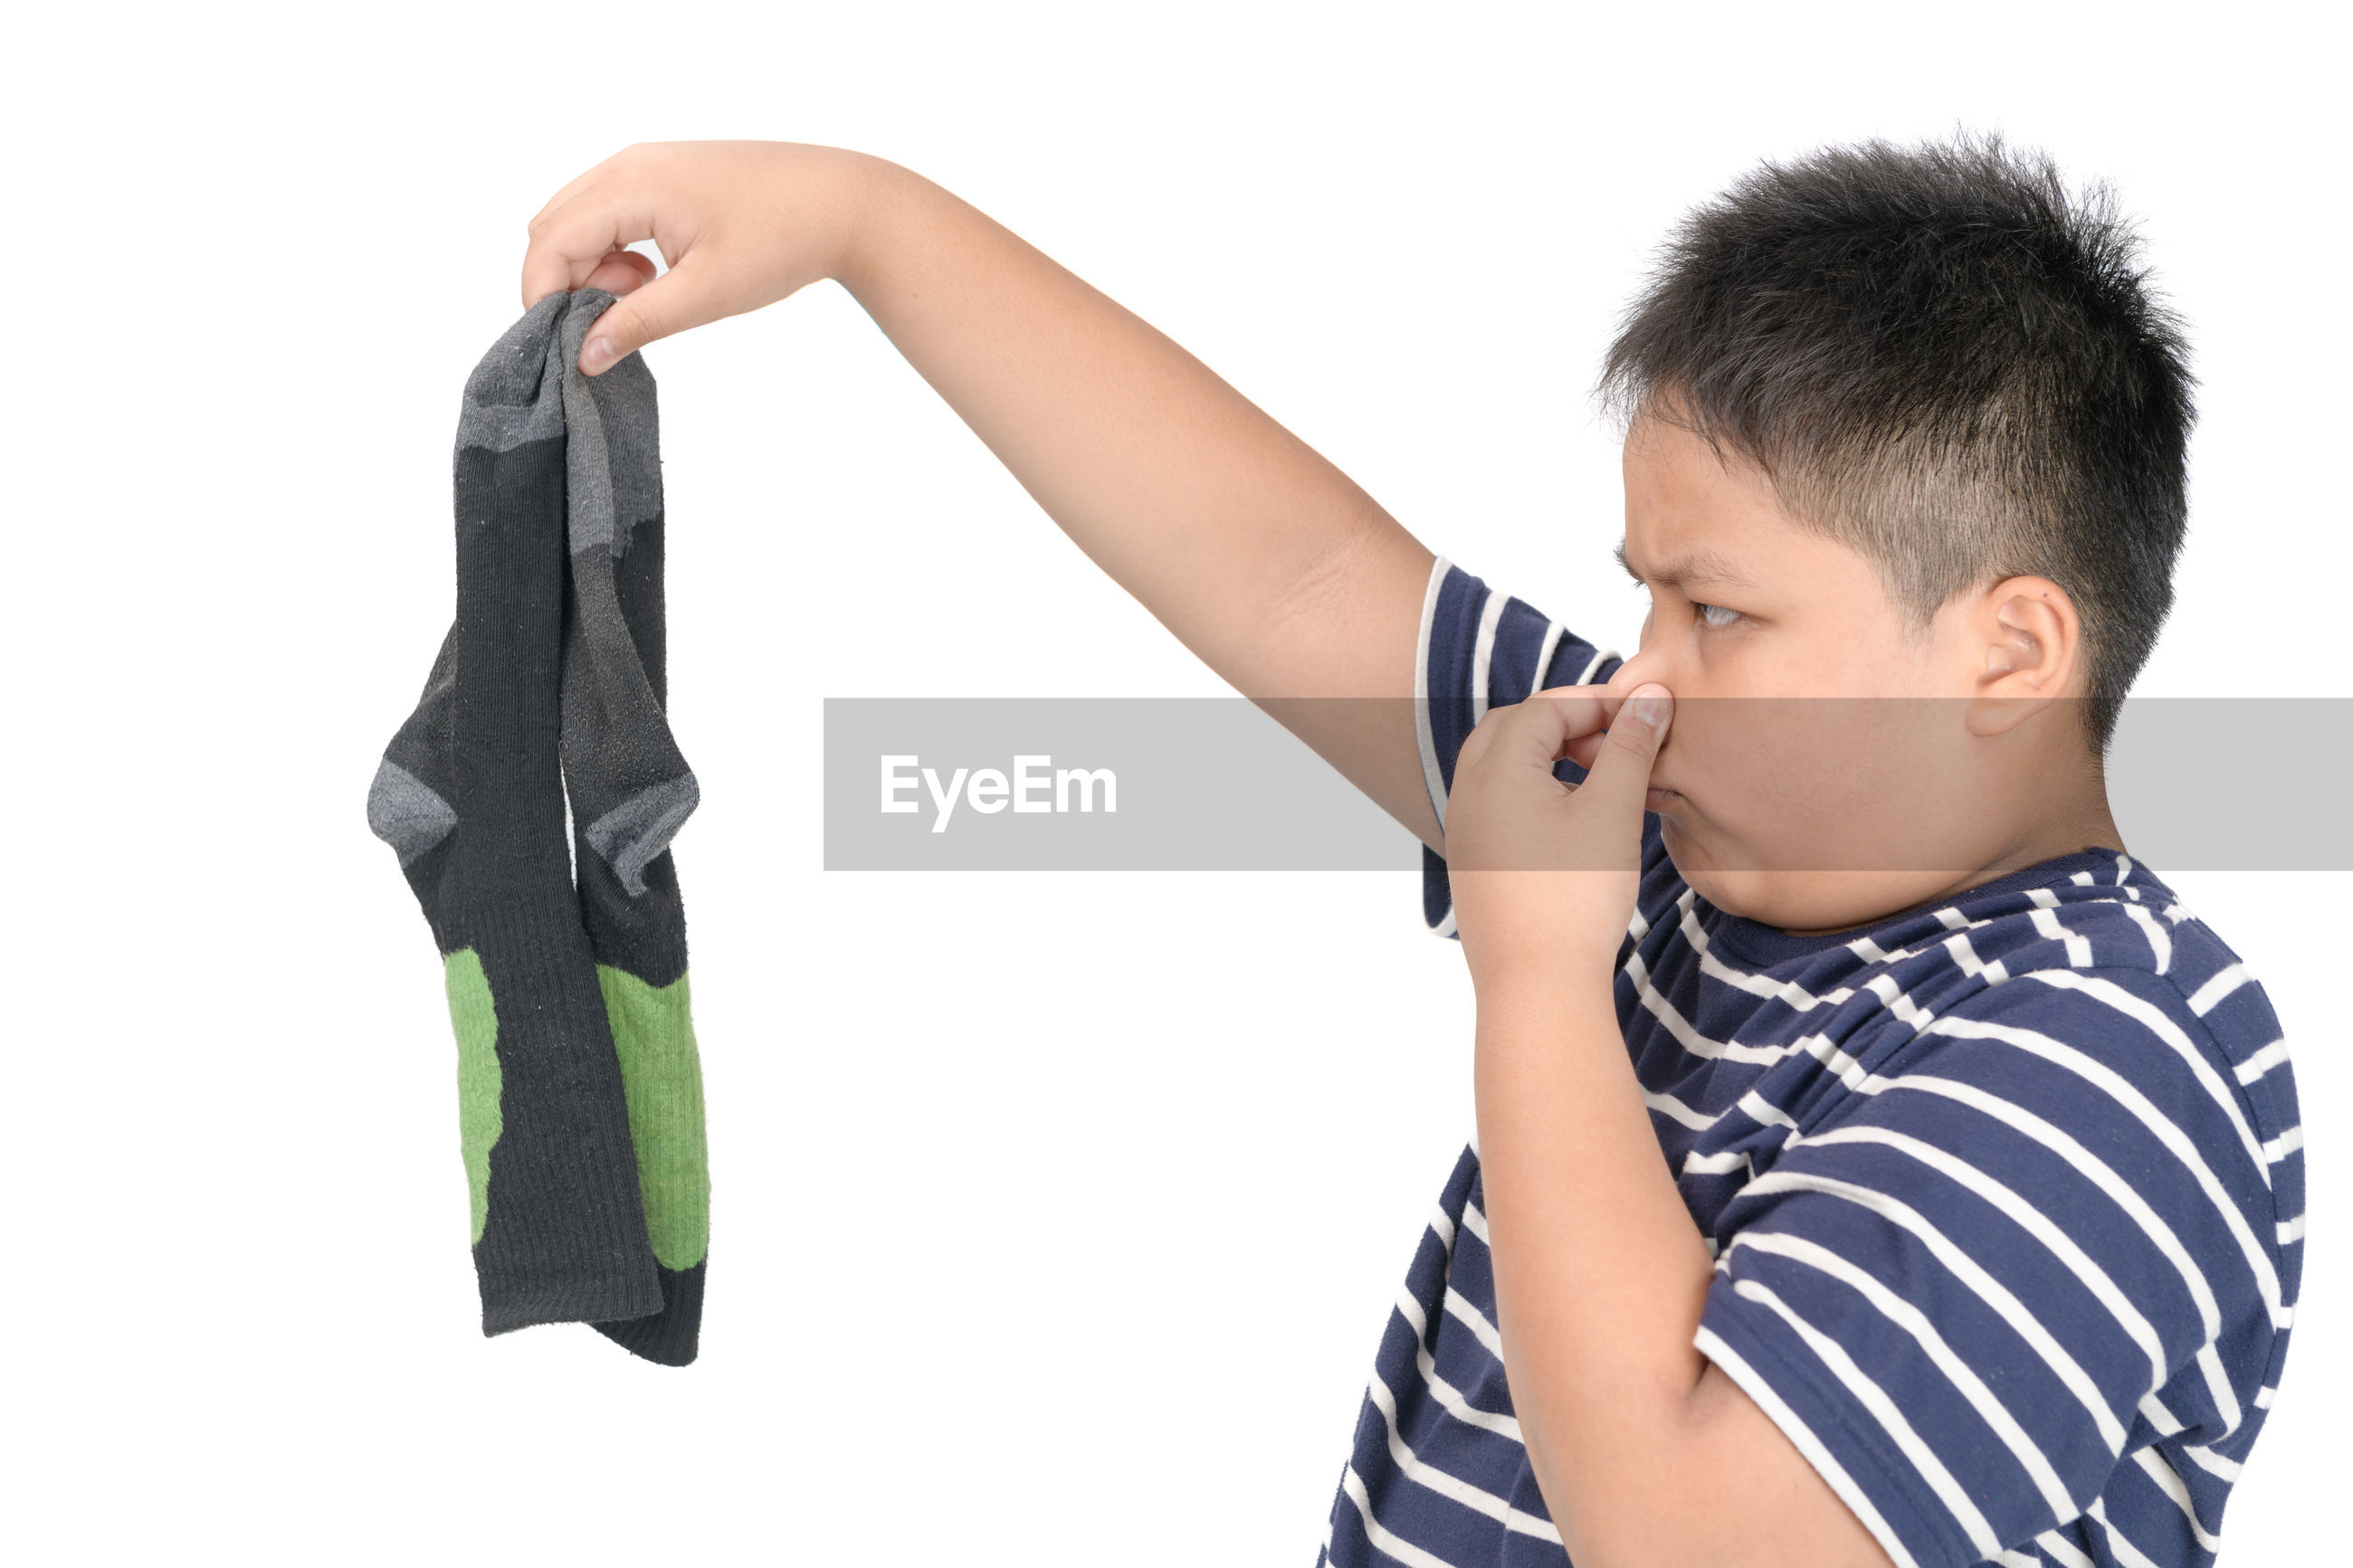 Boy covering nose while holding socks against white background